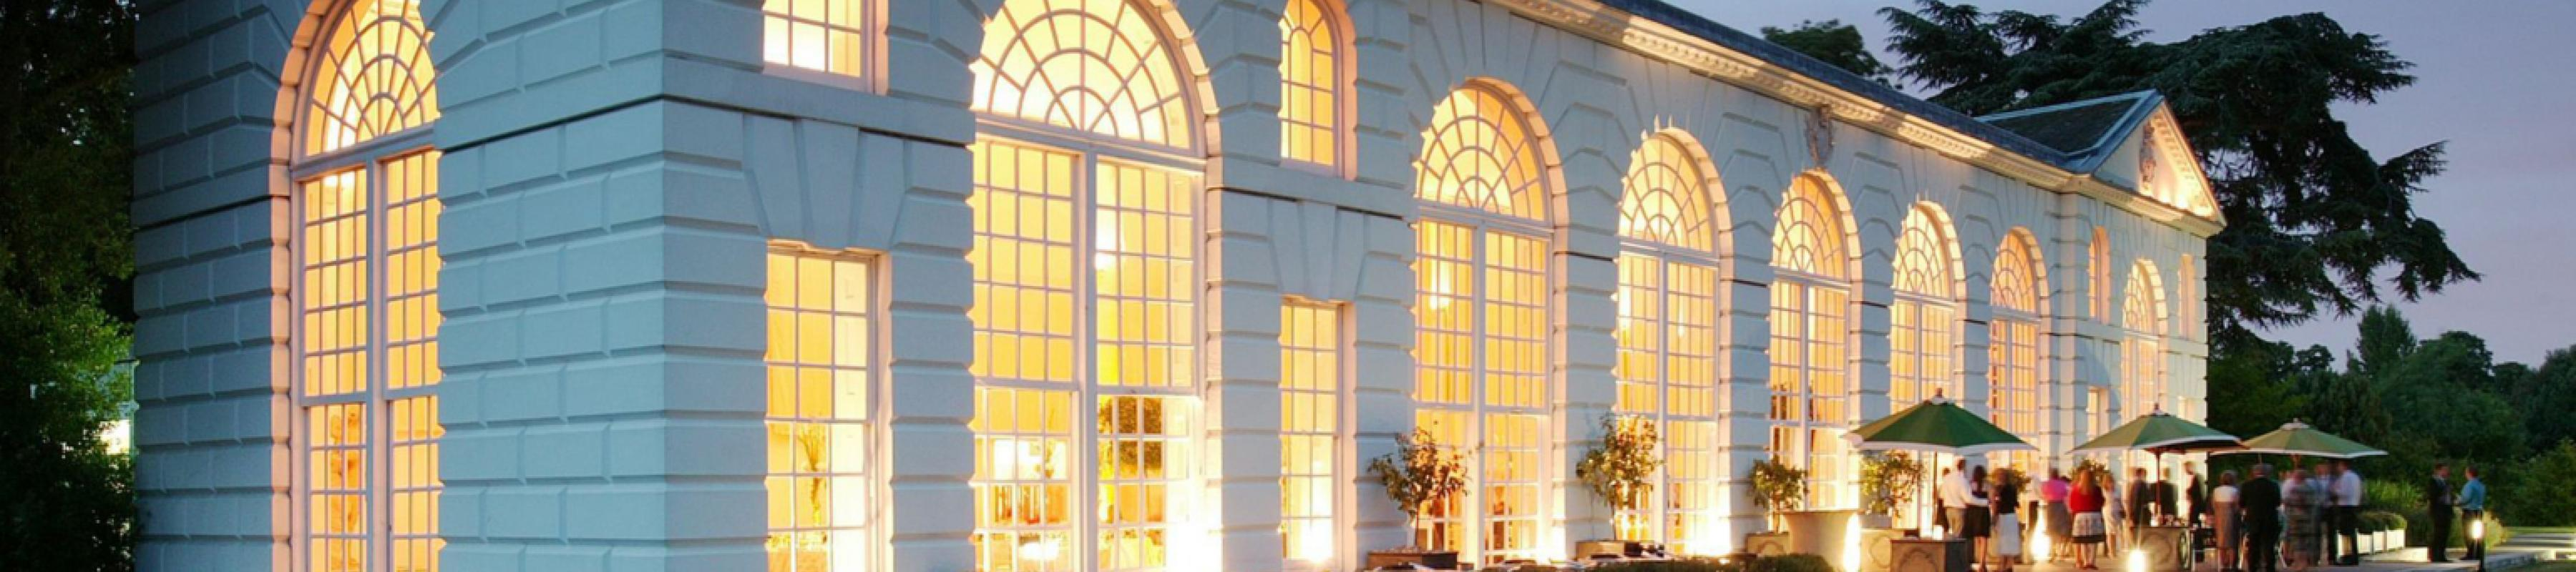 Exterior of the Orangery at dusk